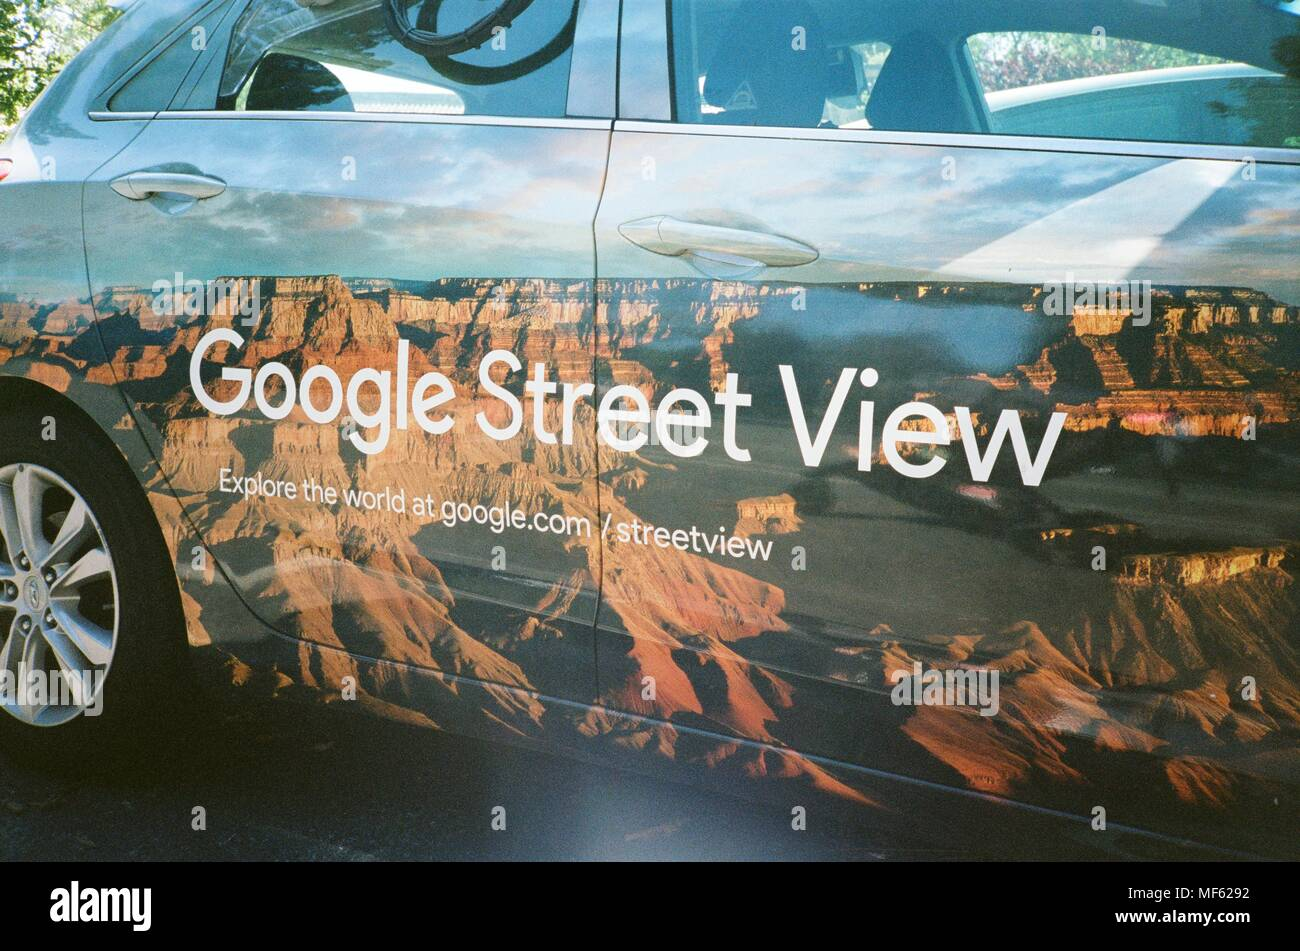 Google Street View vehicle with Street View logo parked at